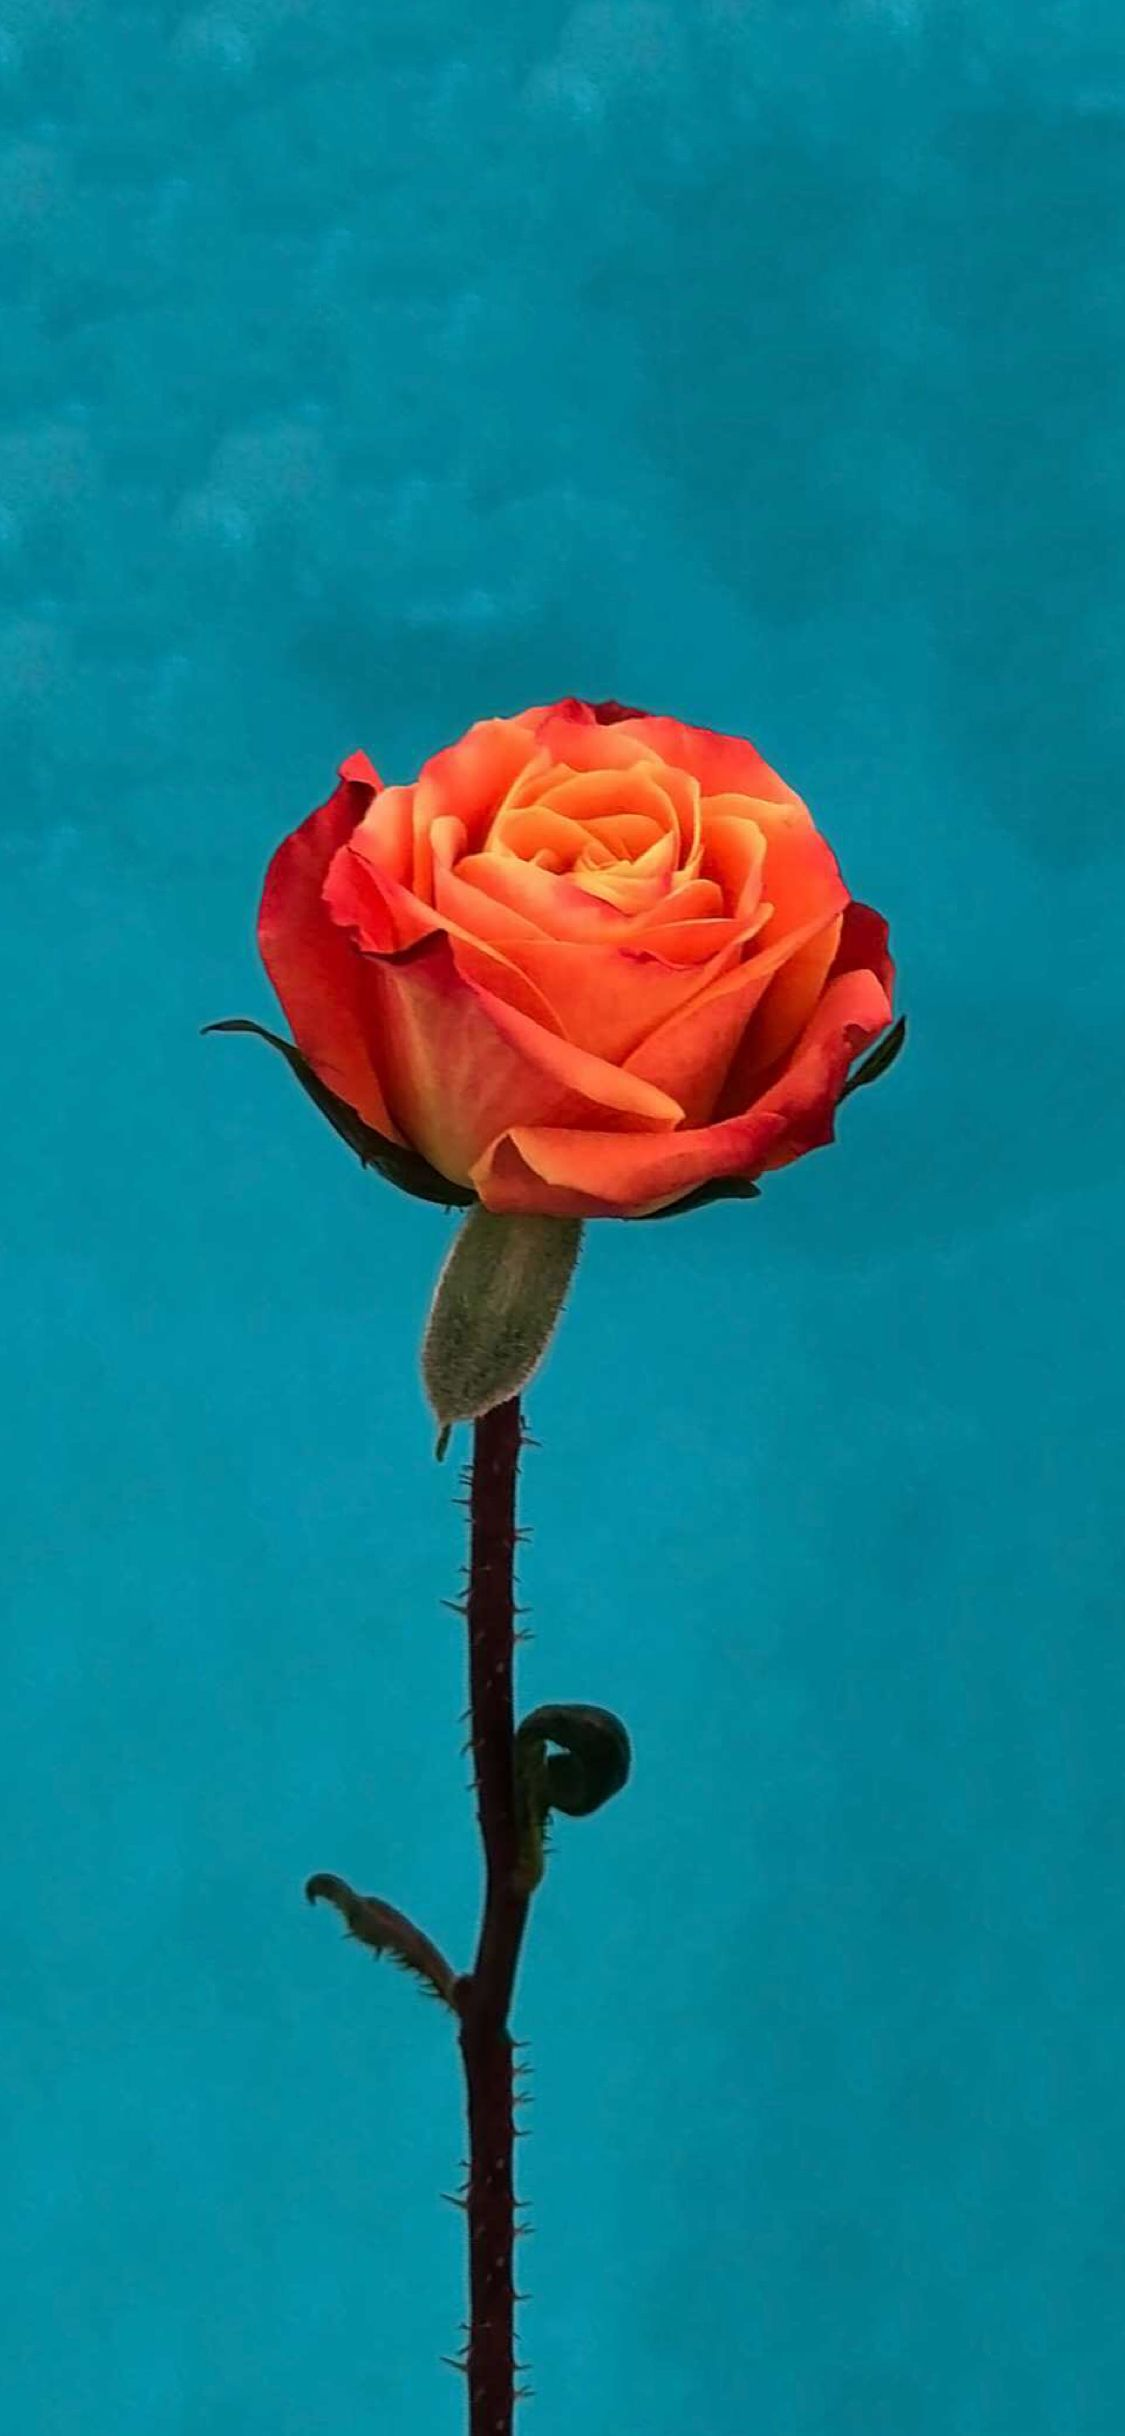 1125x2436 iOS 11 Orange Rose Wallpaper – iOSwall